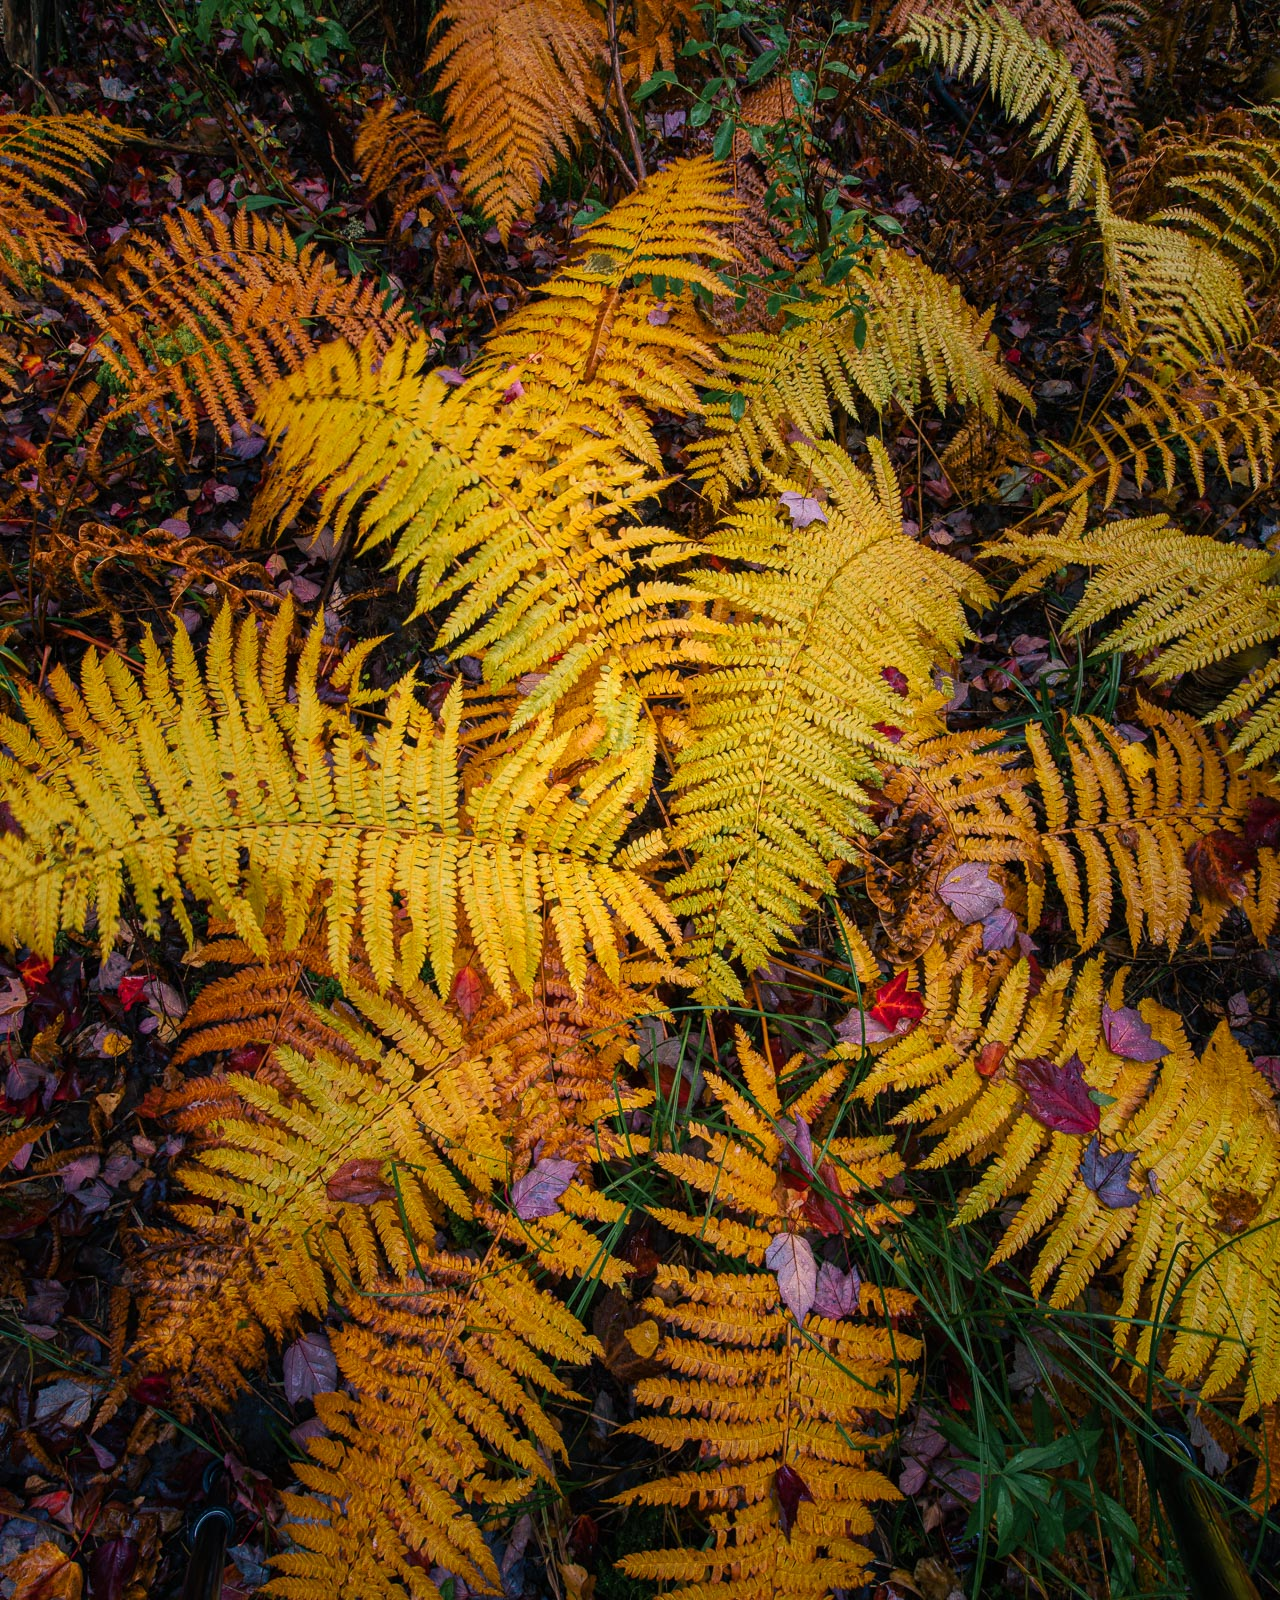 Autumn ferns and fallen leaves in Acadia National Park.